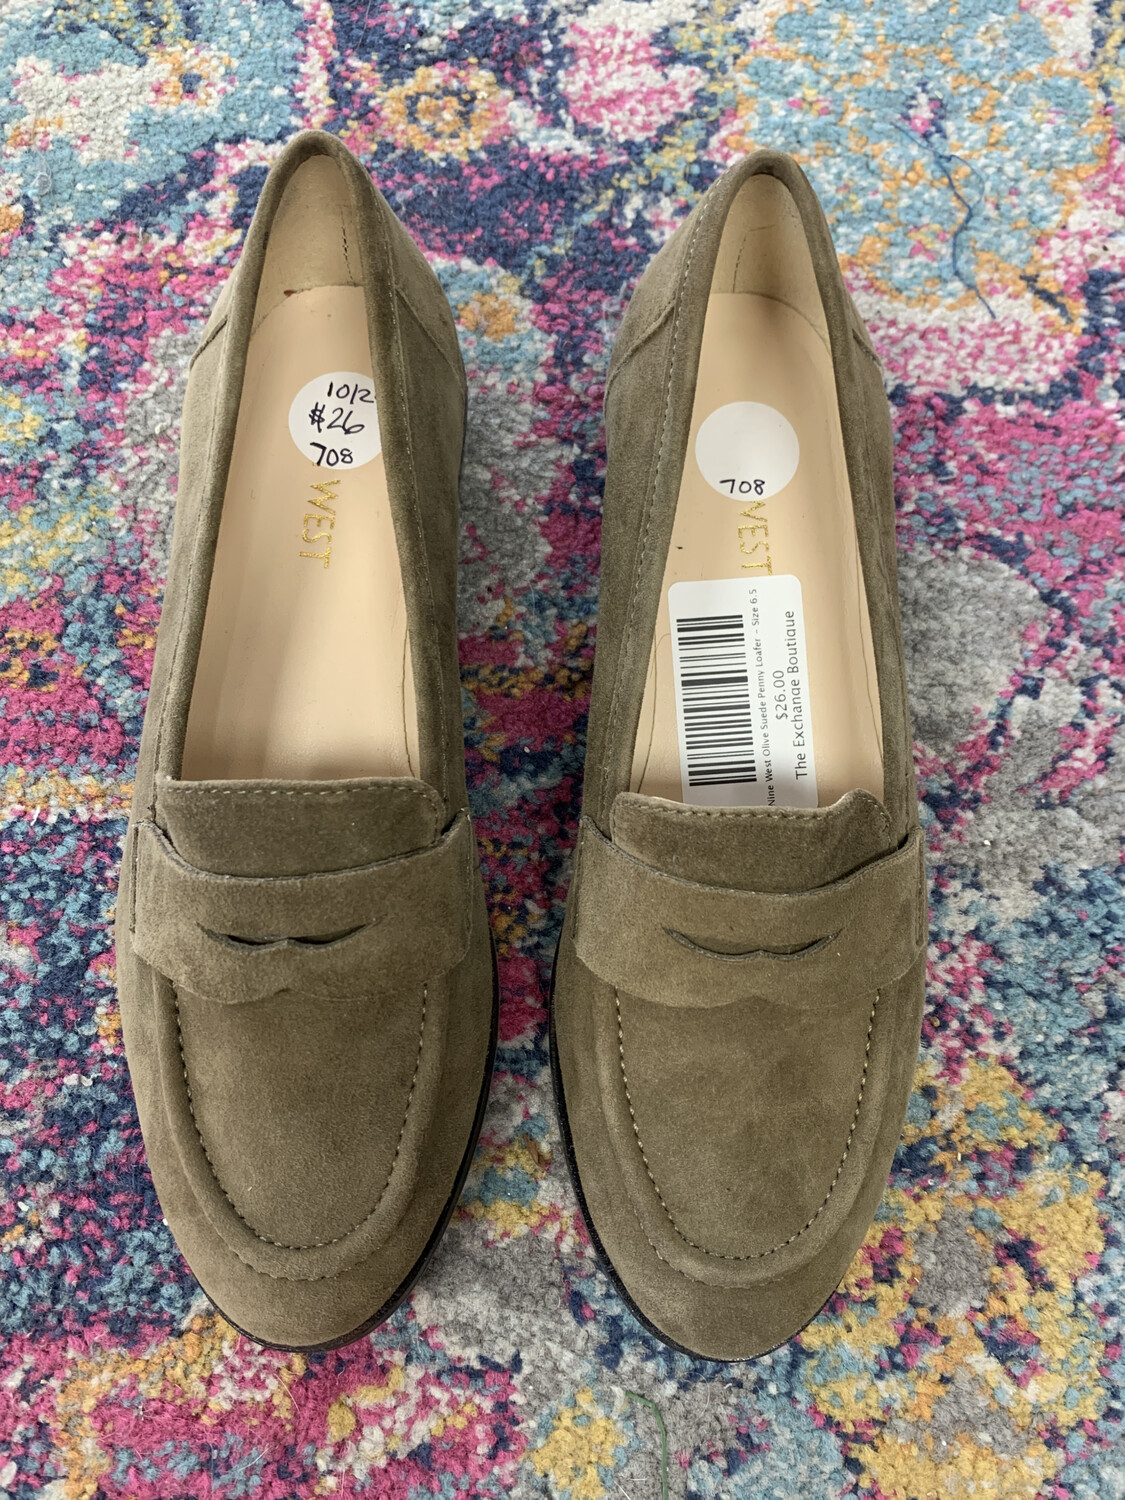 Nine West Olive Suede Penny Loafer - Size 6.5